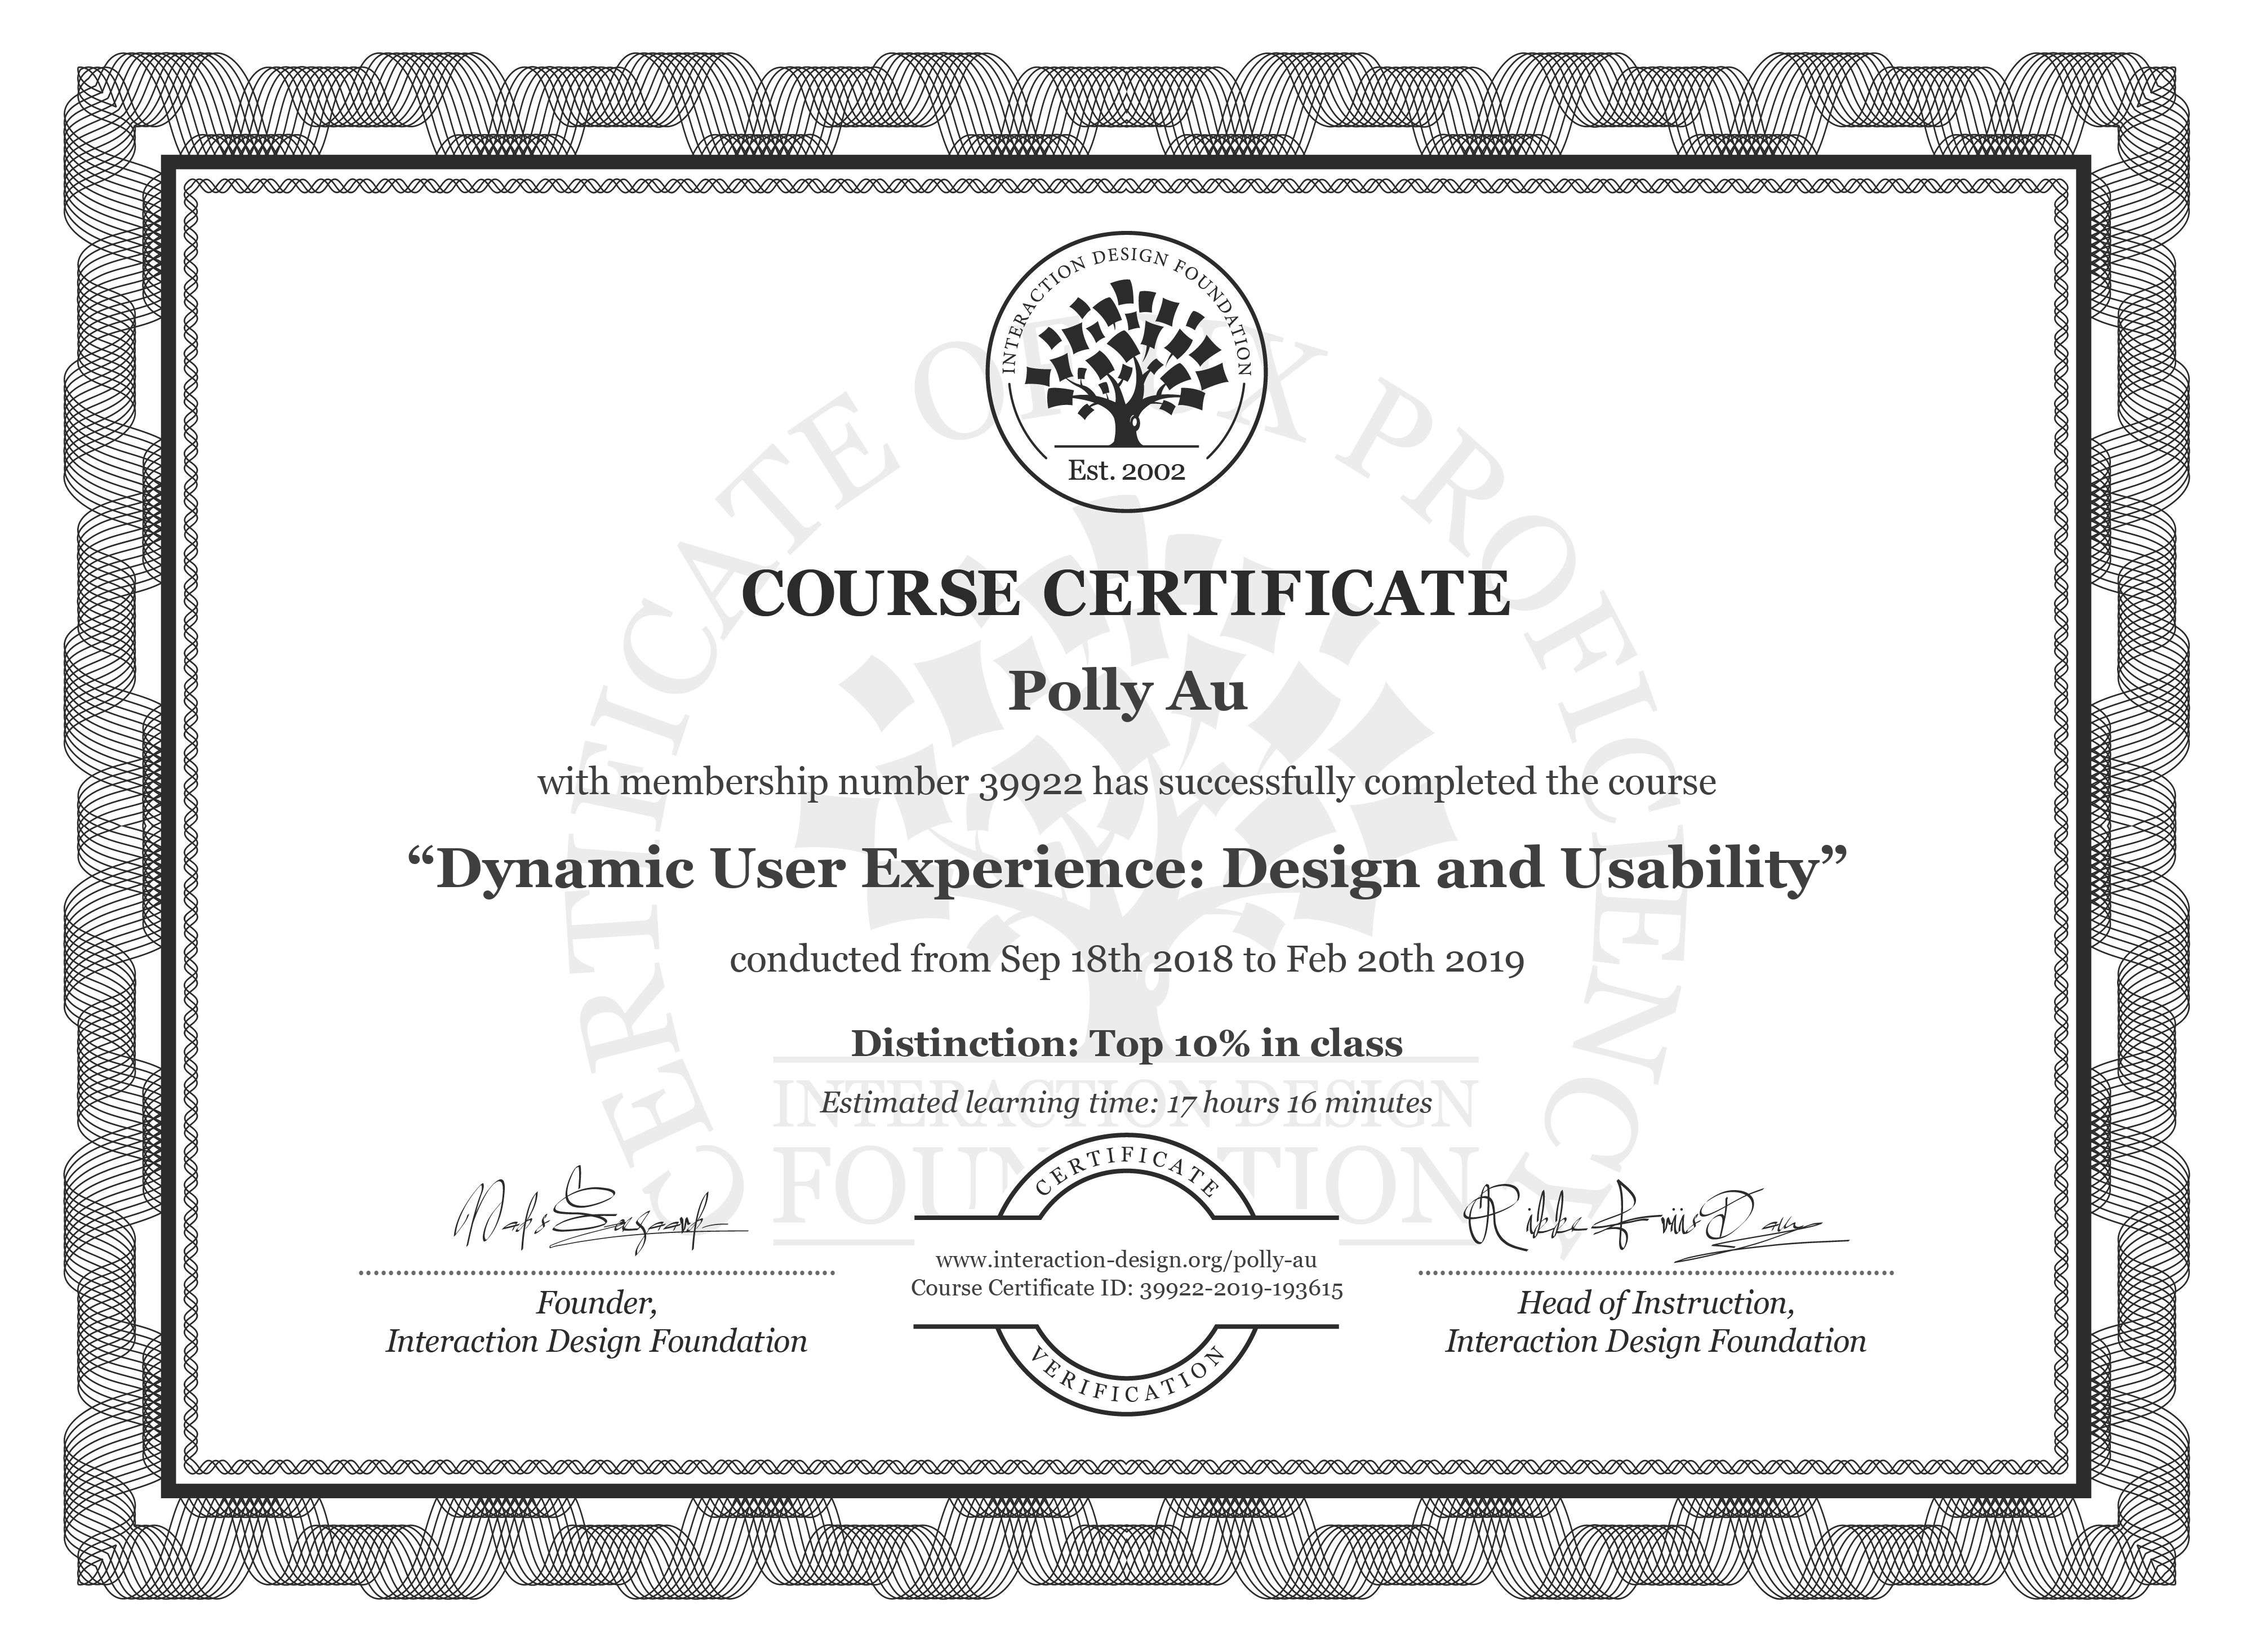 Polly Au's Course Certificate: Dynamic User Experience: Design and Usability